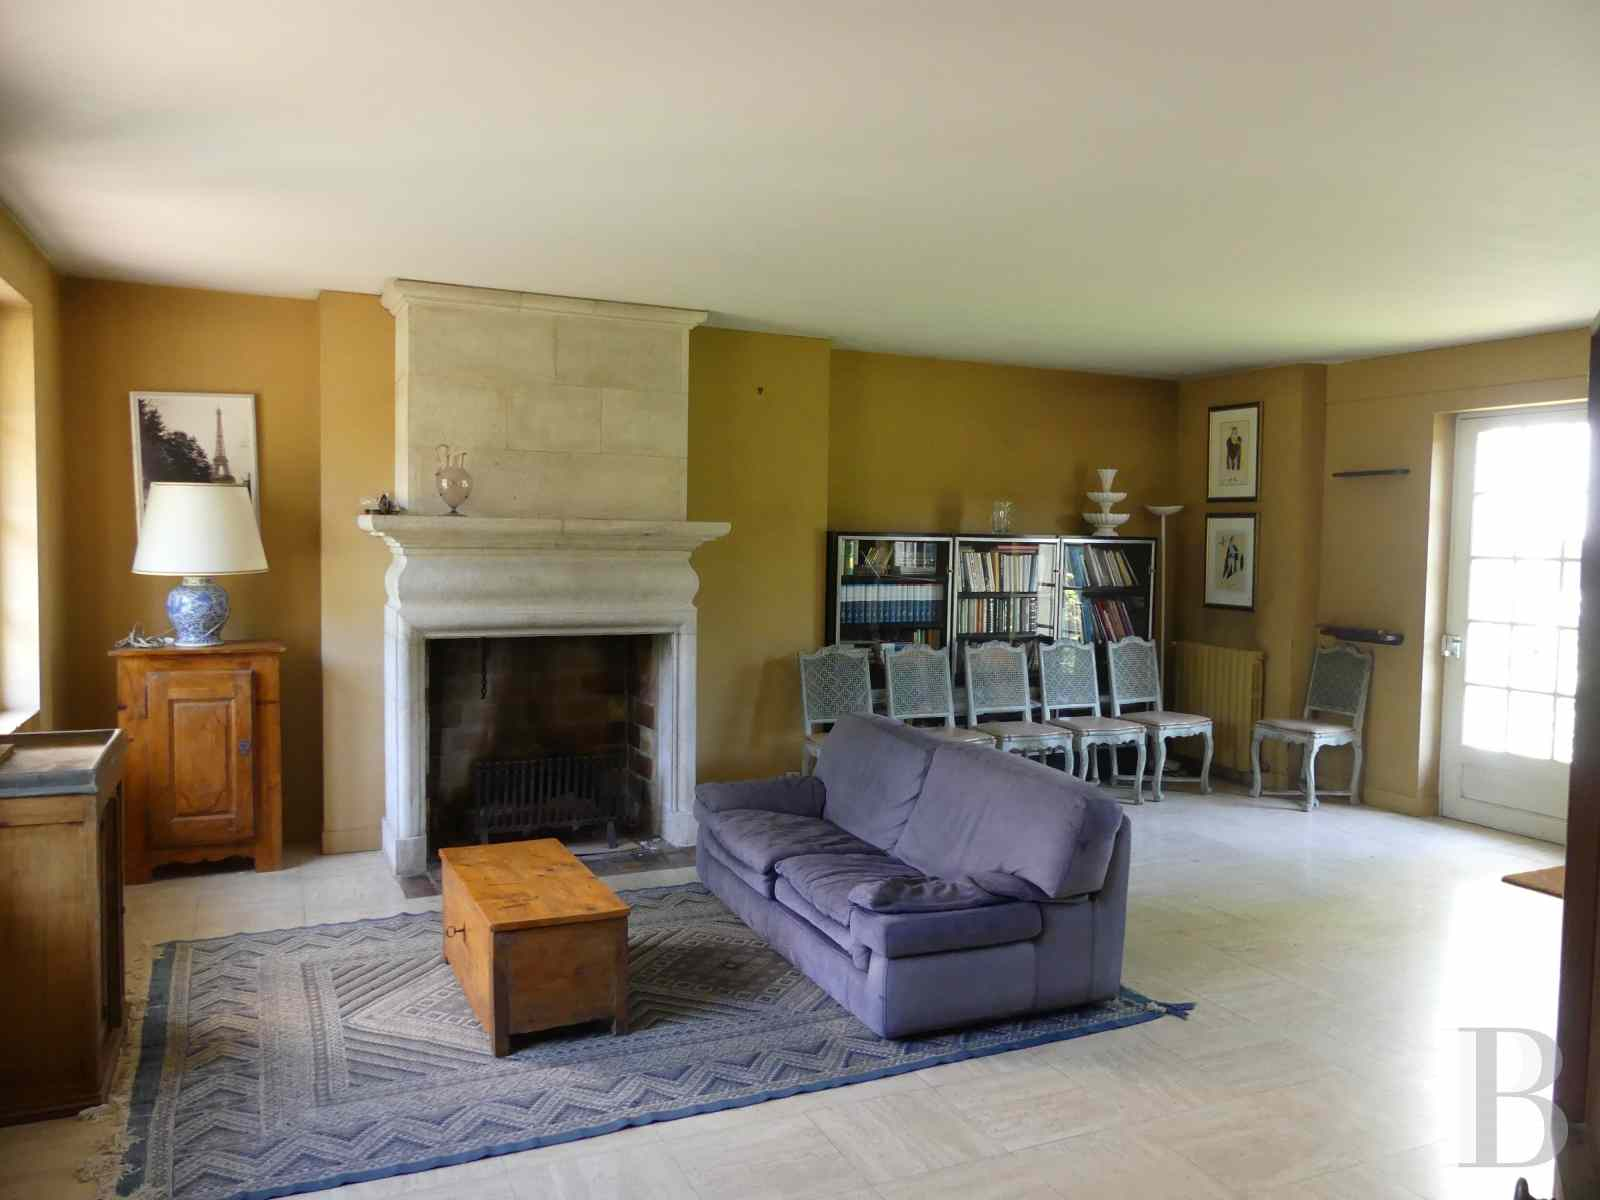 property for sale France ile de france 30km paris - 8 zoom